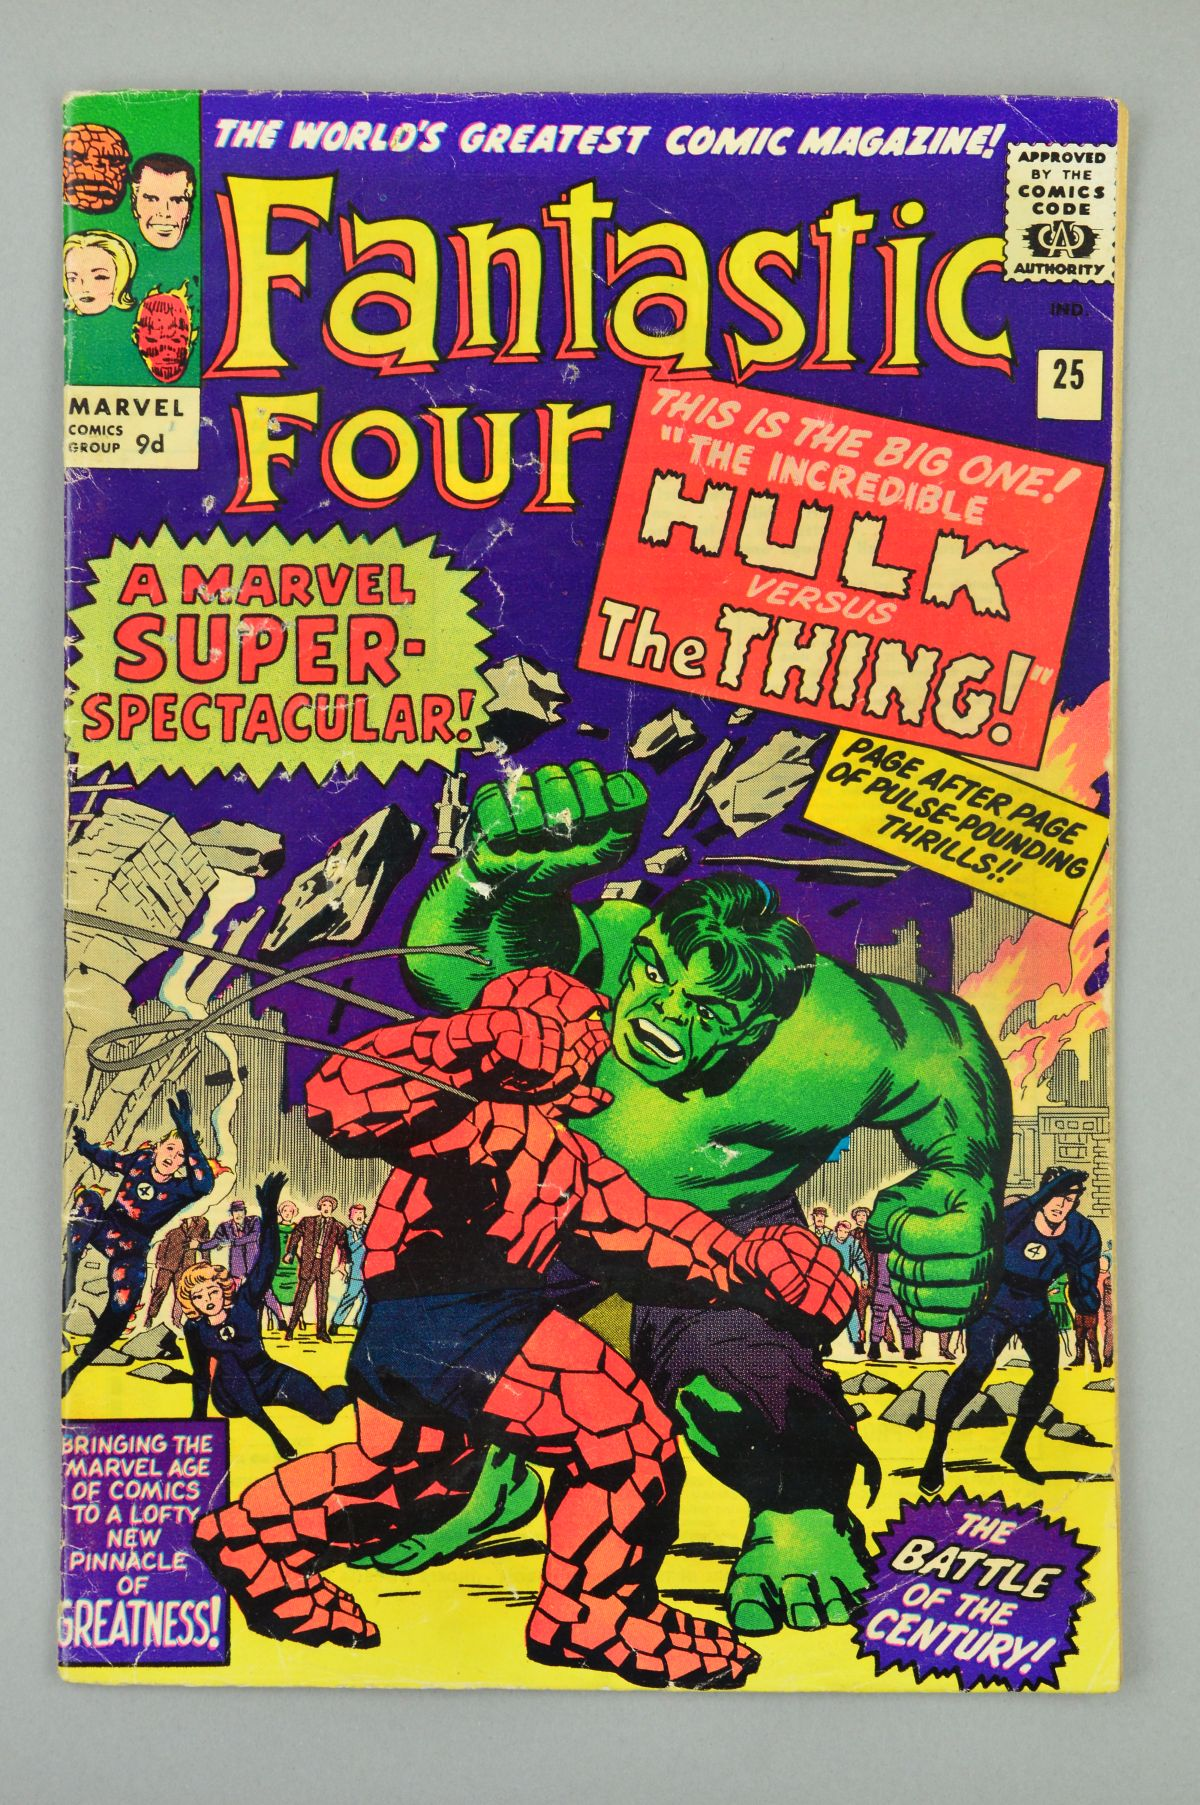 Lot 1825 - Fantastic Four (1961) #25, Published:April 10, 1964, The battle you've been waiting for! The